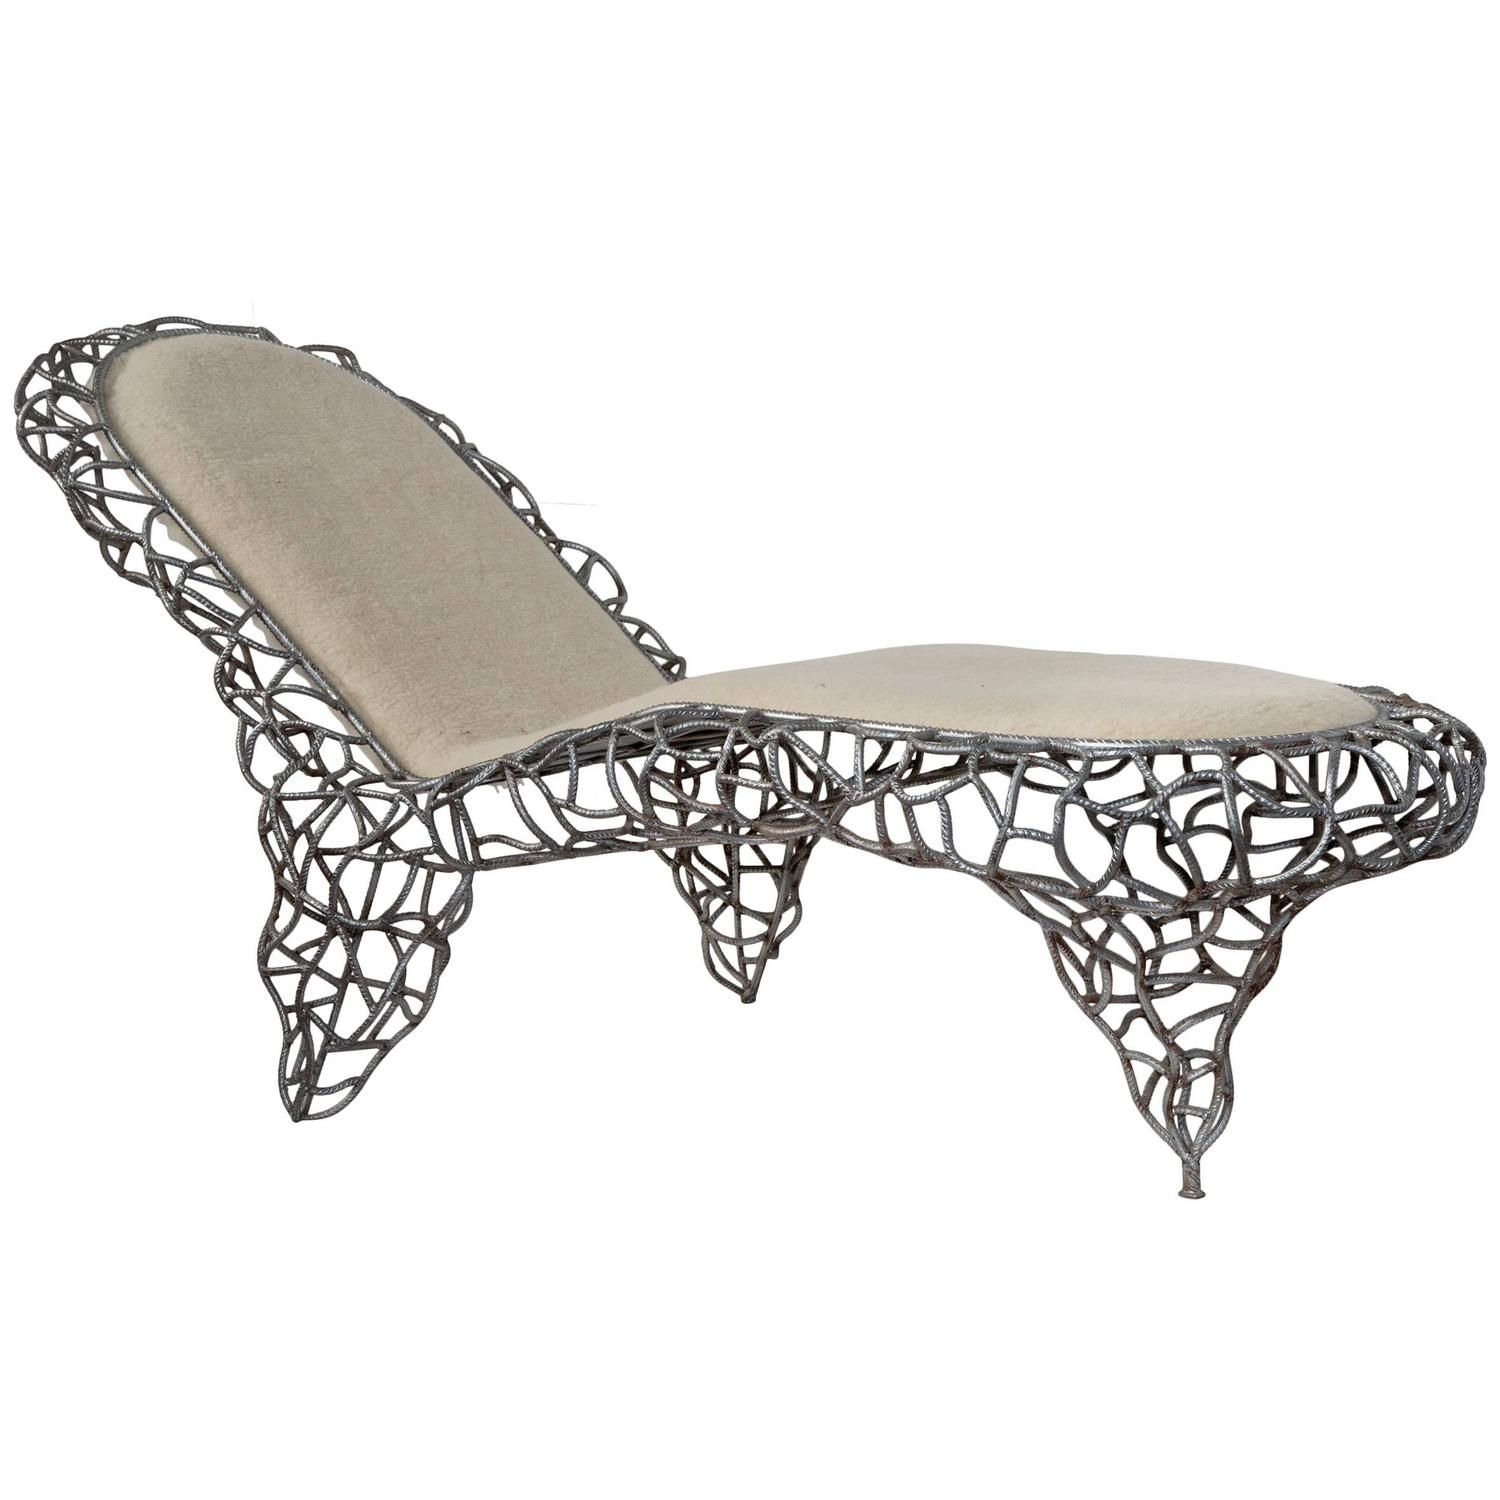 1980s Wrought Iron Daybed | From a unique collection of antique and modern day beds at https://www.1stdibs.com/furniture/seating/day-beds/